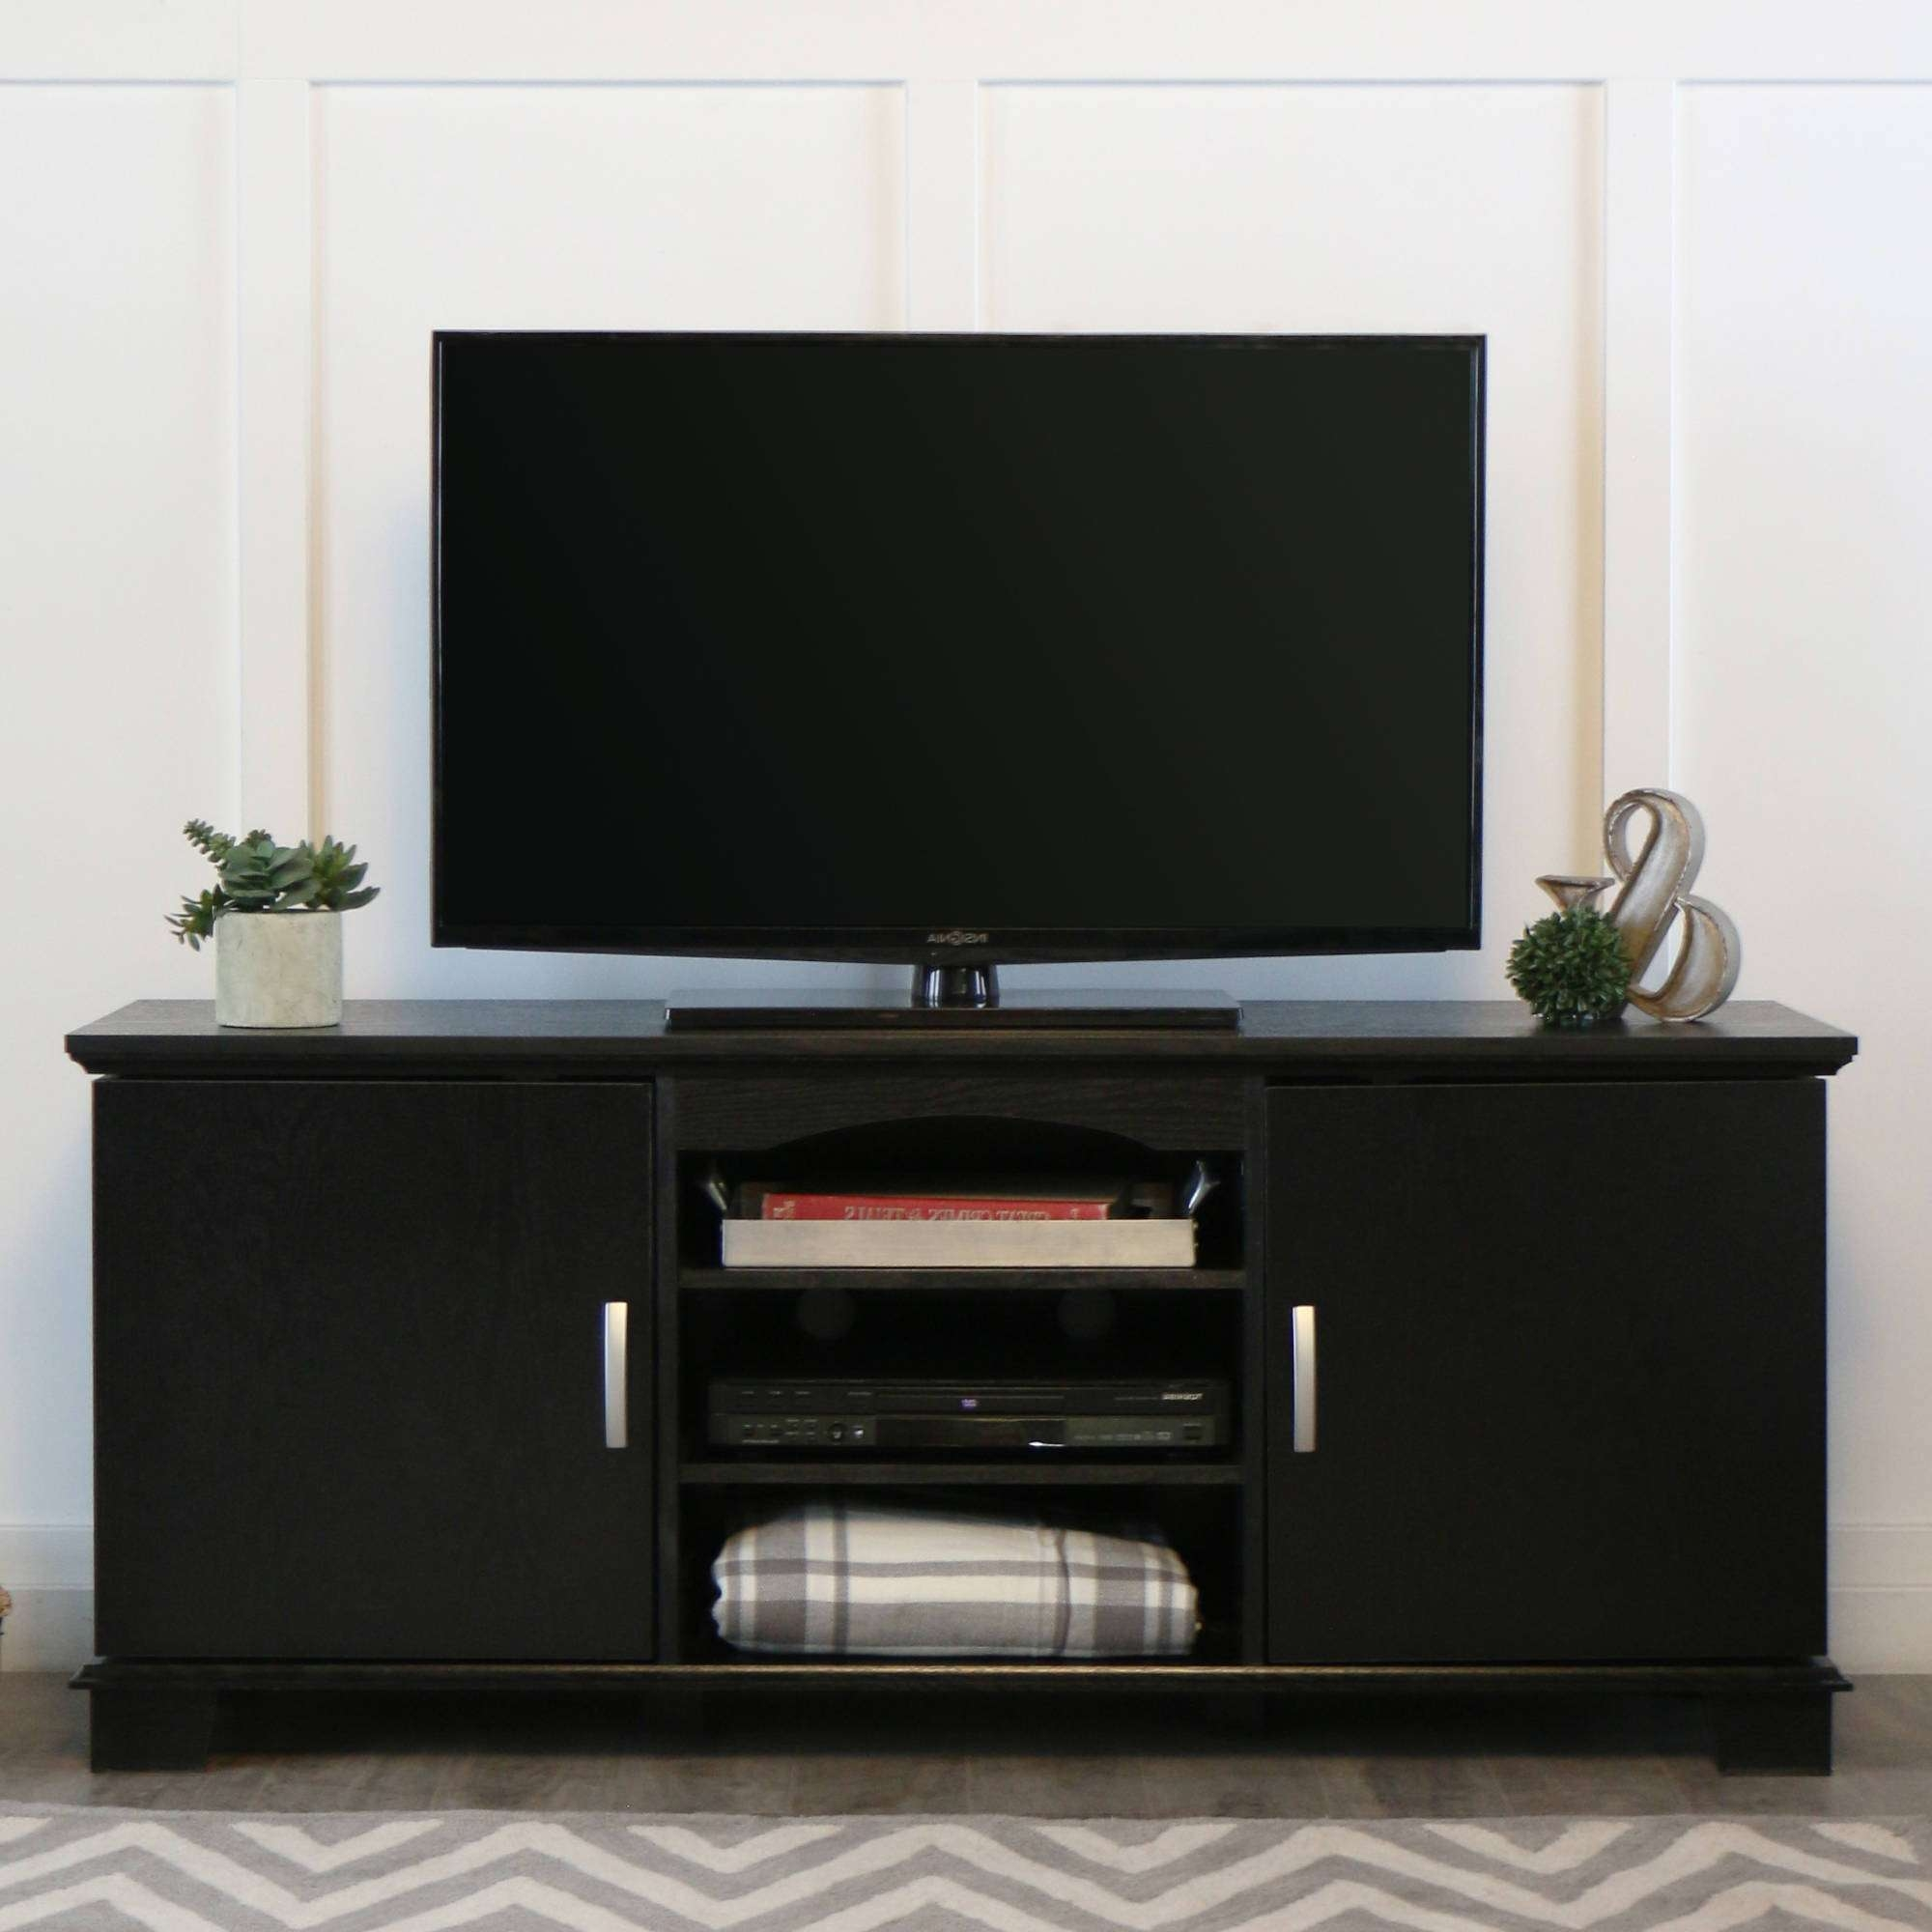 "Walker Edison Black Tv Stand For Tvs Up To 65"", Multiple Colors Regarding Tall Black Tv Cabinets (View 10 of 20)"